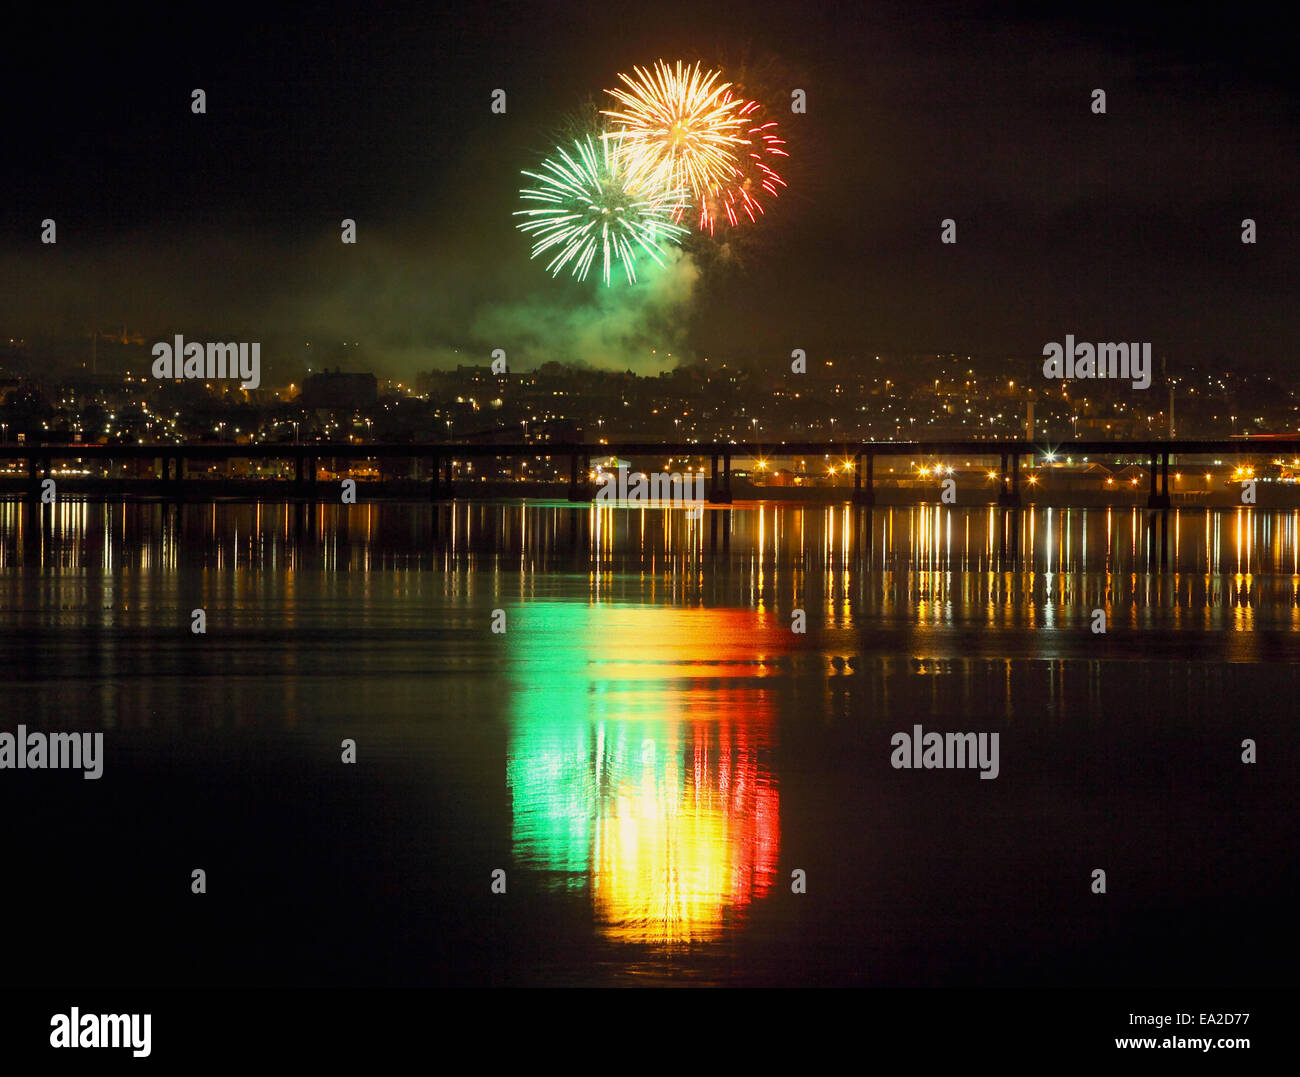 Dundee, Scotland, UK. 5th November, 2014. Reflections on the River Tay,of Fireworks on Bonfire night in Dundee, - Stock Image